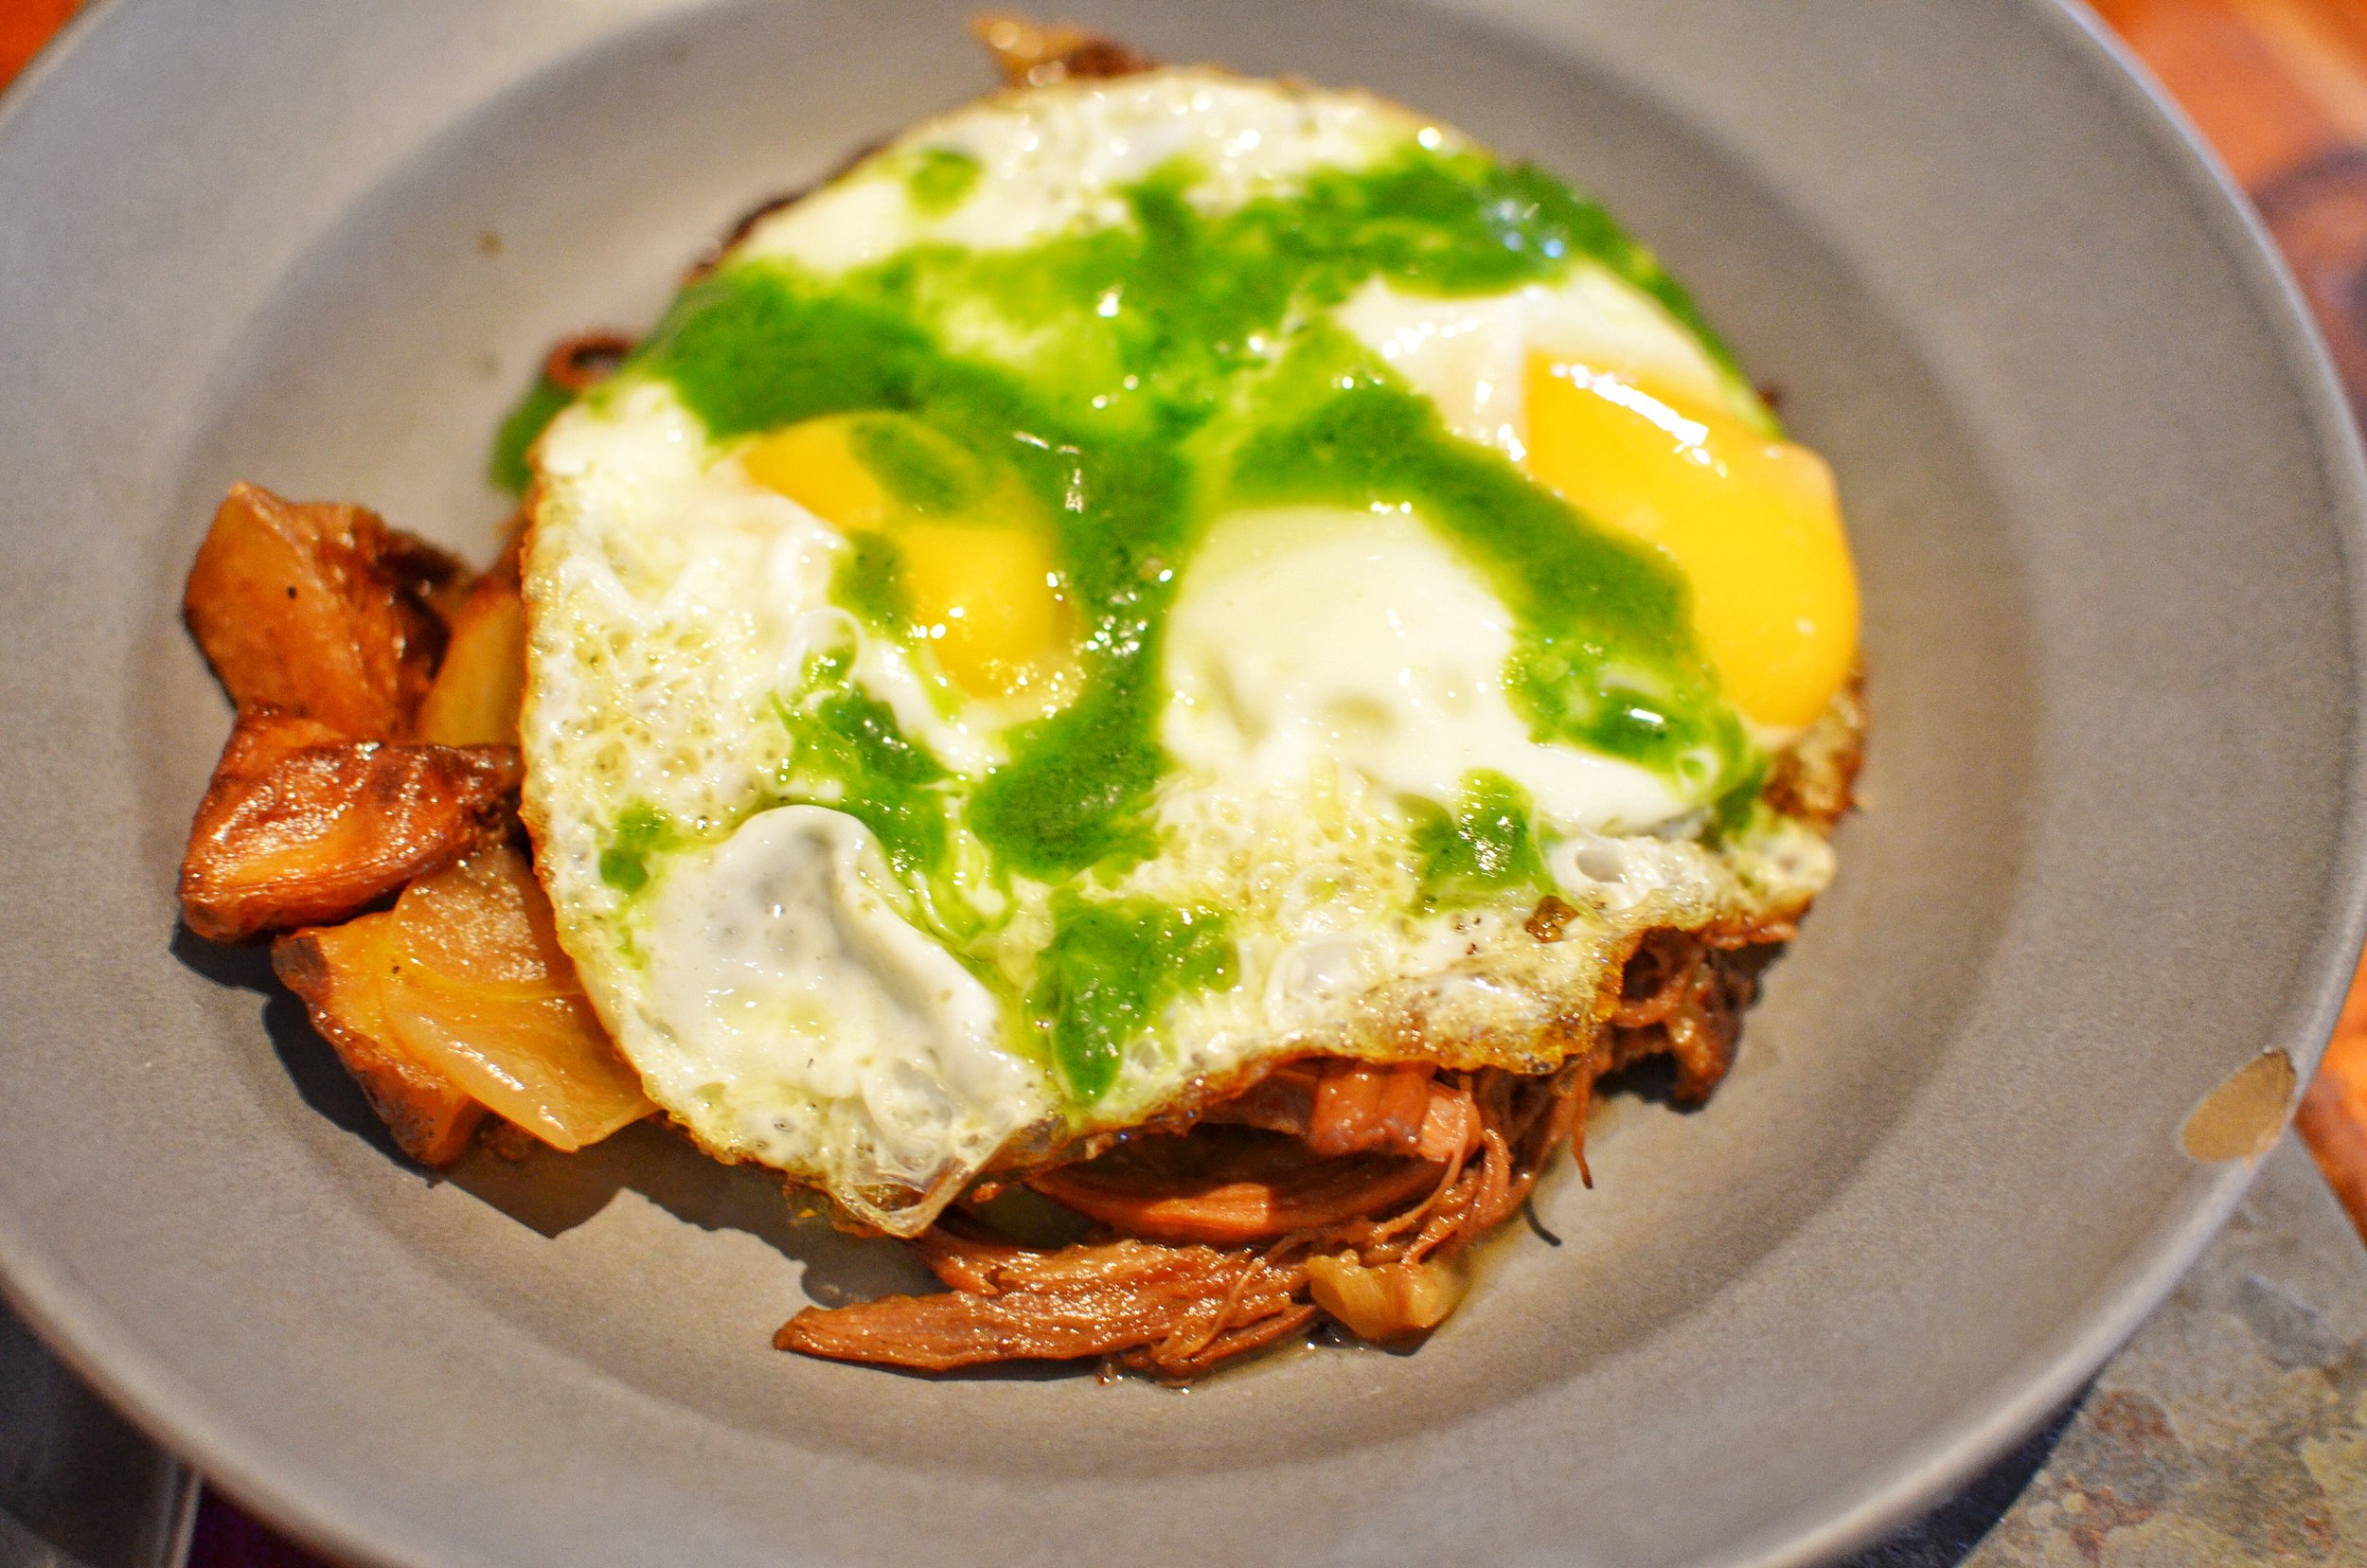 Grass fed beef hash with yukon potatoes, two fried eggs, salsa verde and cramalized onions